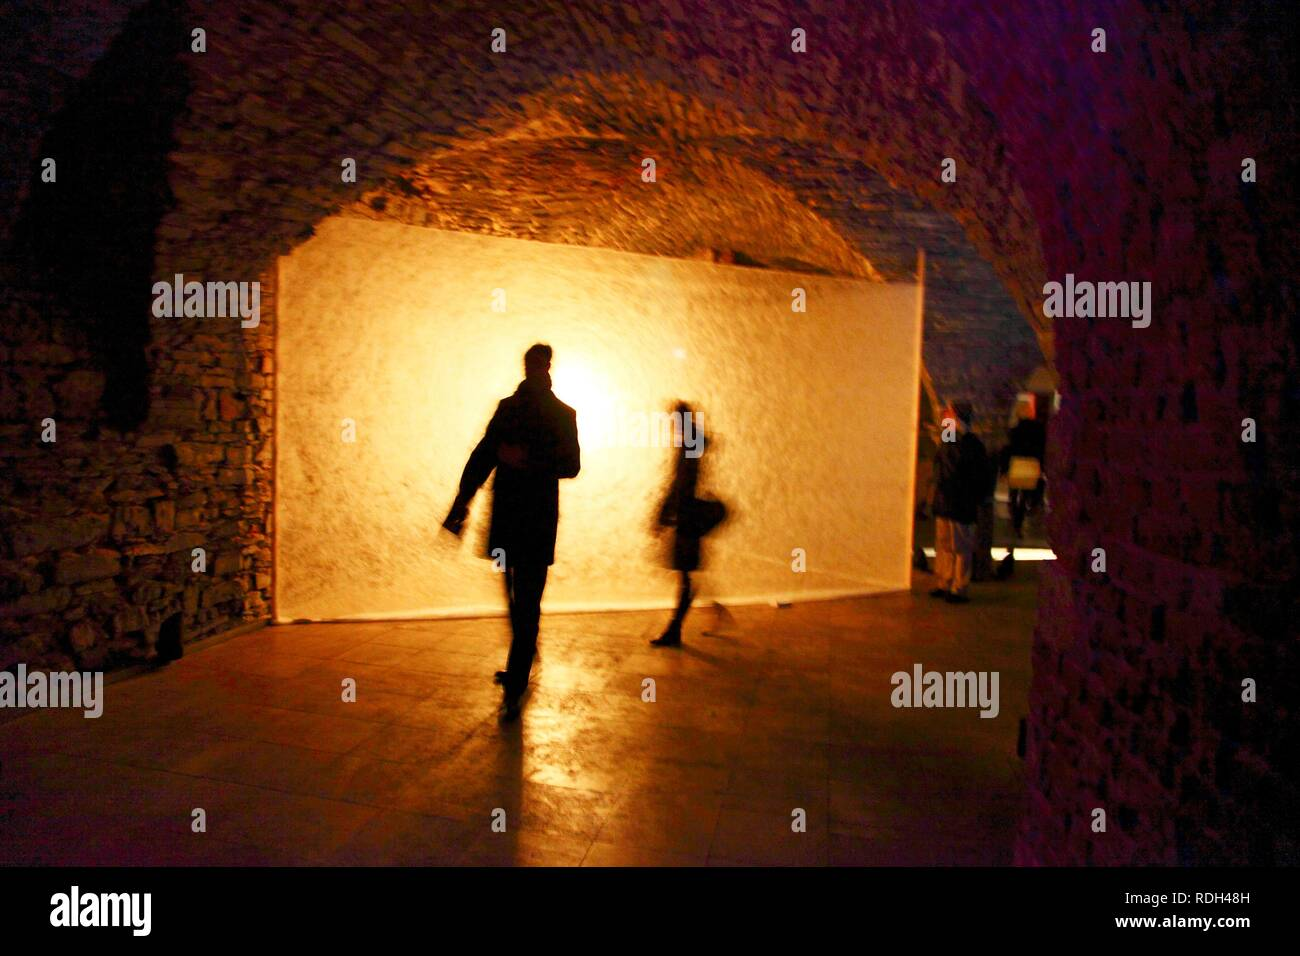 Openlight 1.0, indoor light installations at the NH Hotel, Ghent Light Festival, East Flanders, Belgium, Europe - Stock Image